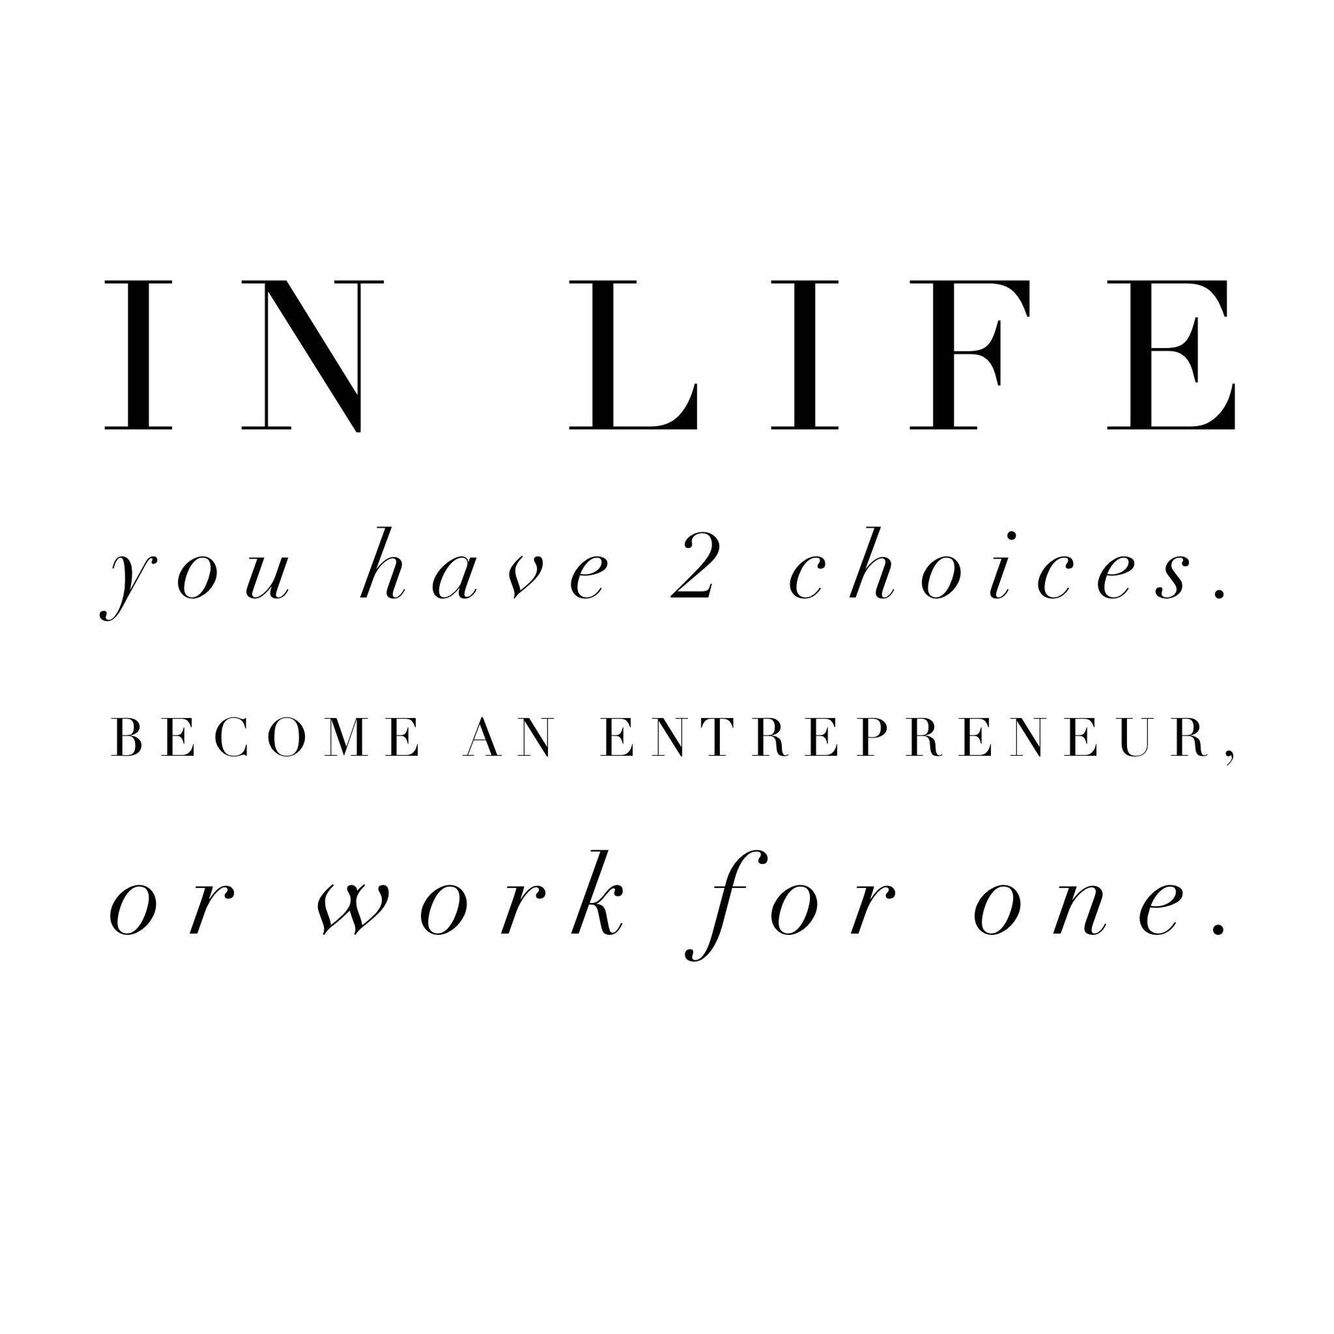 Which will you choose? I am an entrepreneur that means I